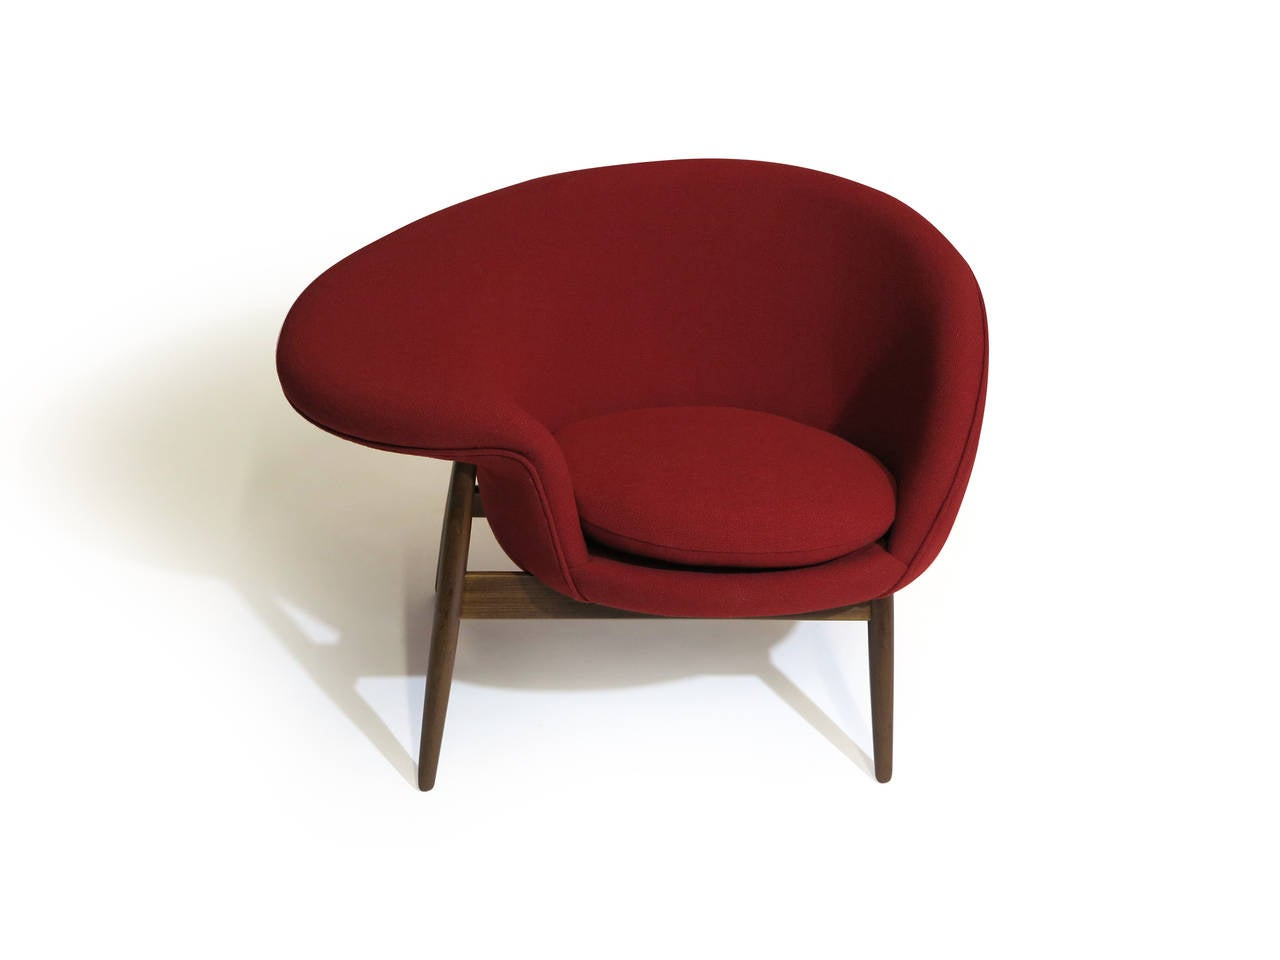 fried egg chair pedicure chairs uk hans olsen at 1stdibs